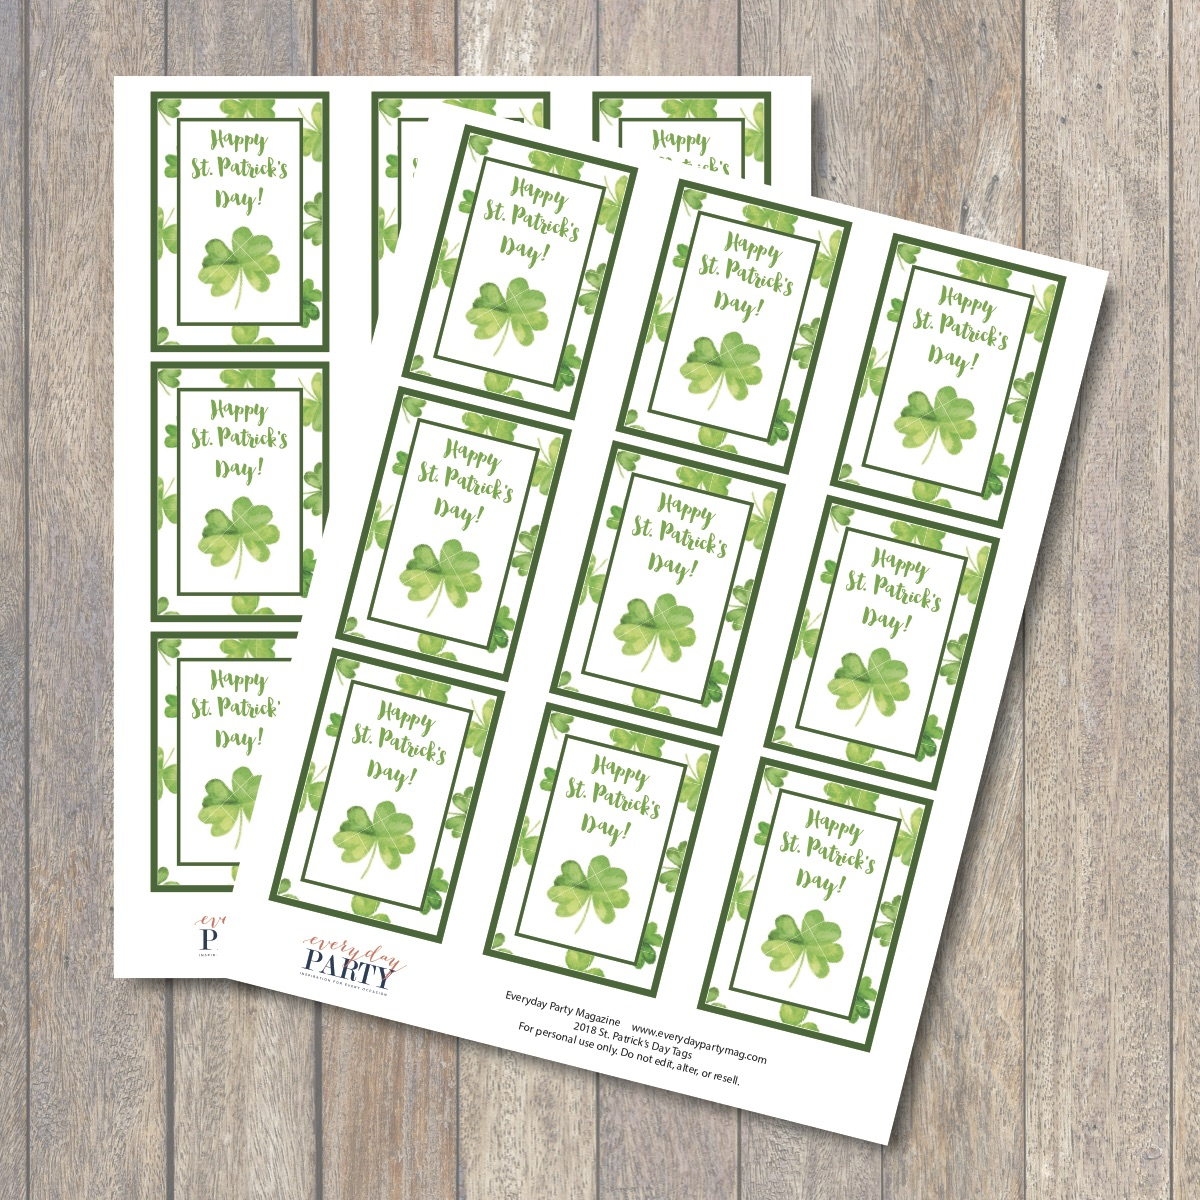 image about St Patricks Day Printable titled Delighted St. Patricks Working day Printable Tags - Day by day Get together Journal